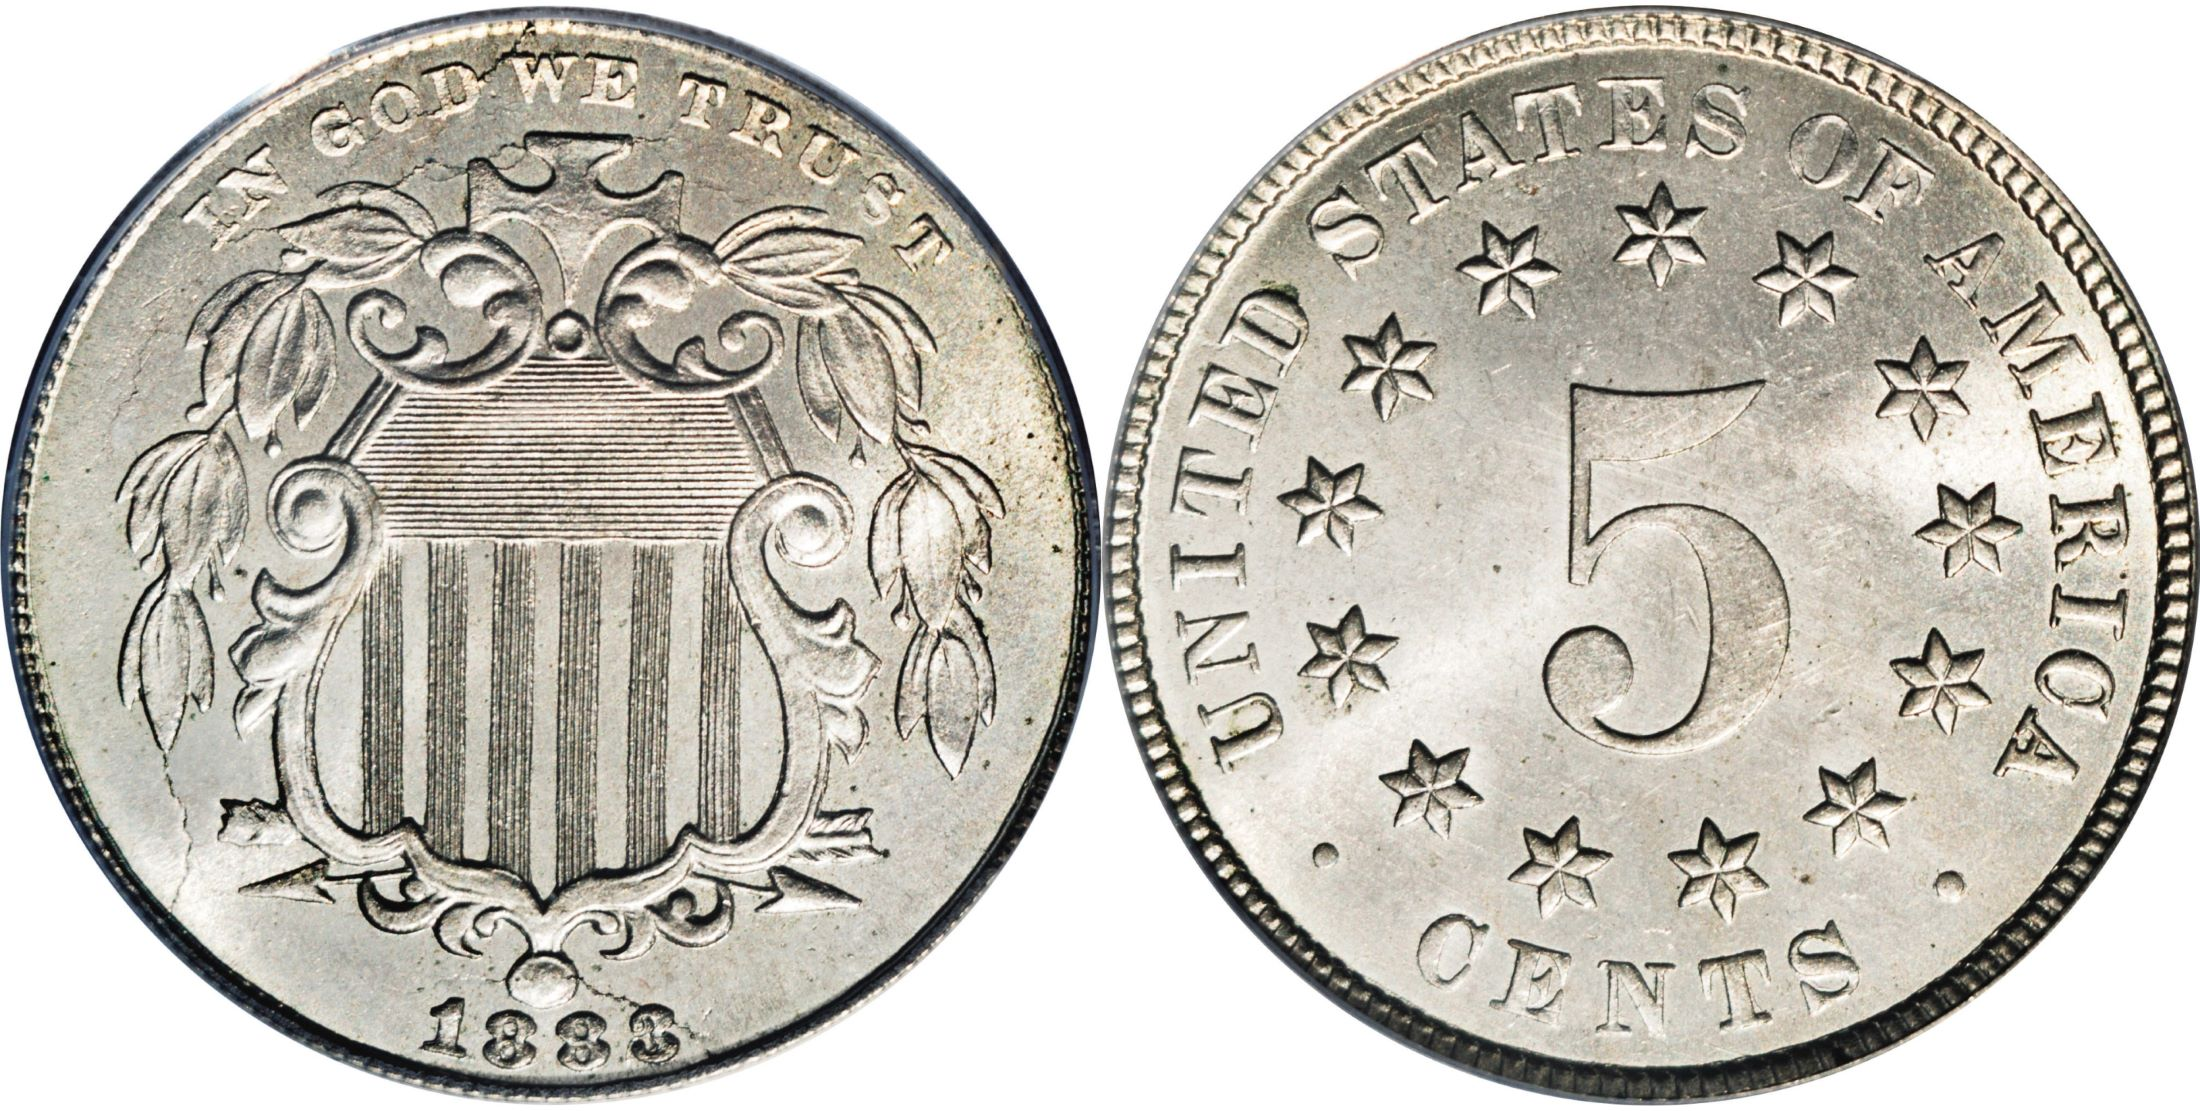 "PCGS MS64<BR>Image courtesy of <a href=""http://www.ha.com"" target=""_blank"">Heritage Numismatic Auctions</a>"